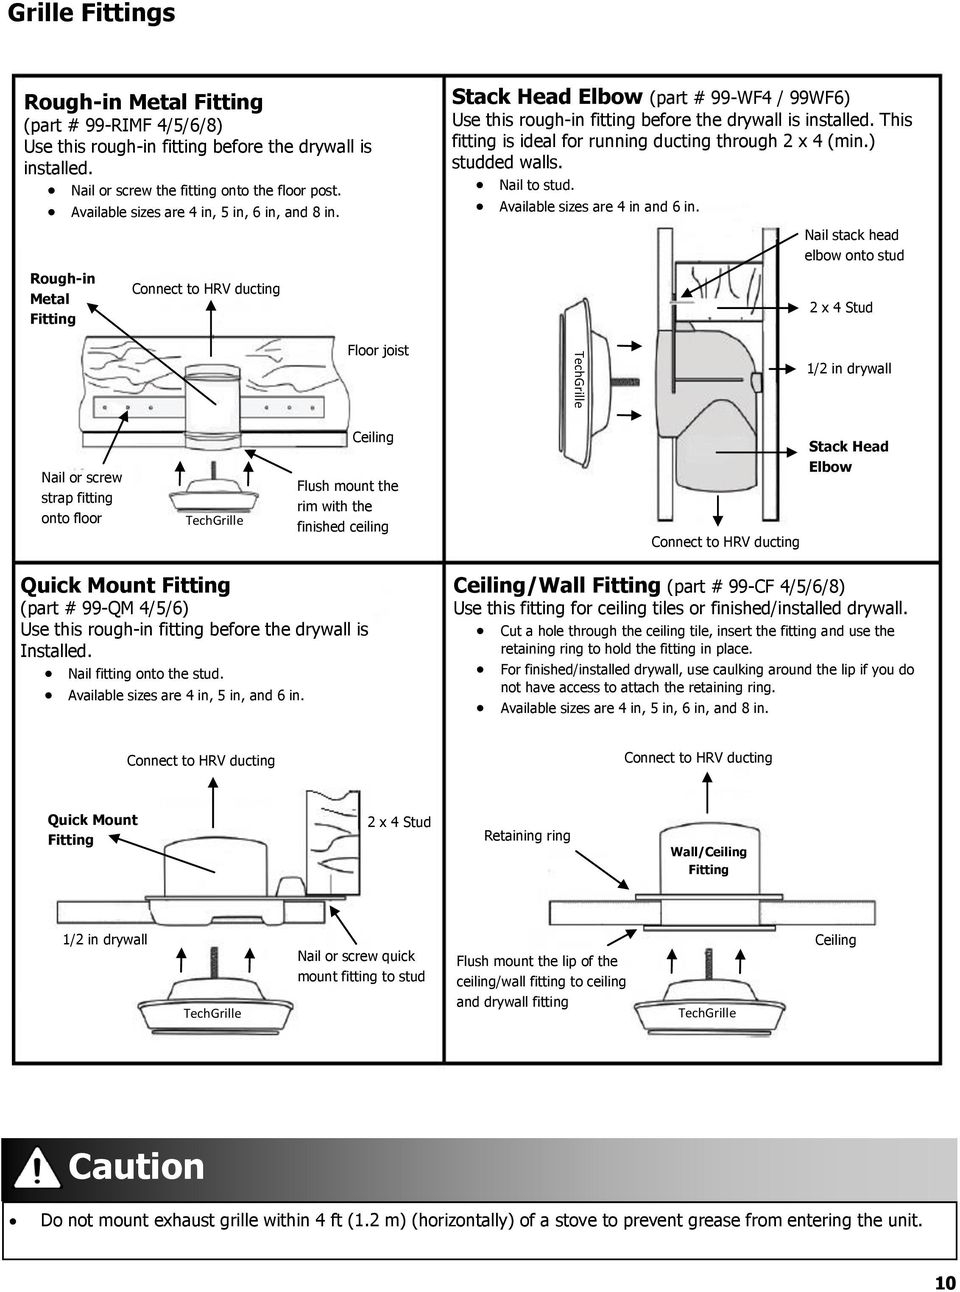 Rnc Series Installation Guide 69 Install Pdf Shr 1 Wiring Diagram Hot Rails Rough In Metal Fitting Connect To Hrv Ducting Floor Joist Stack Head Elbow Part